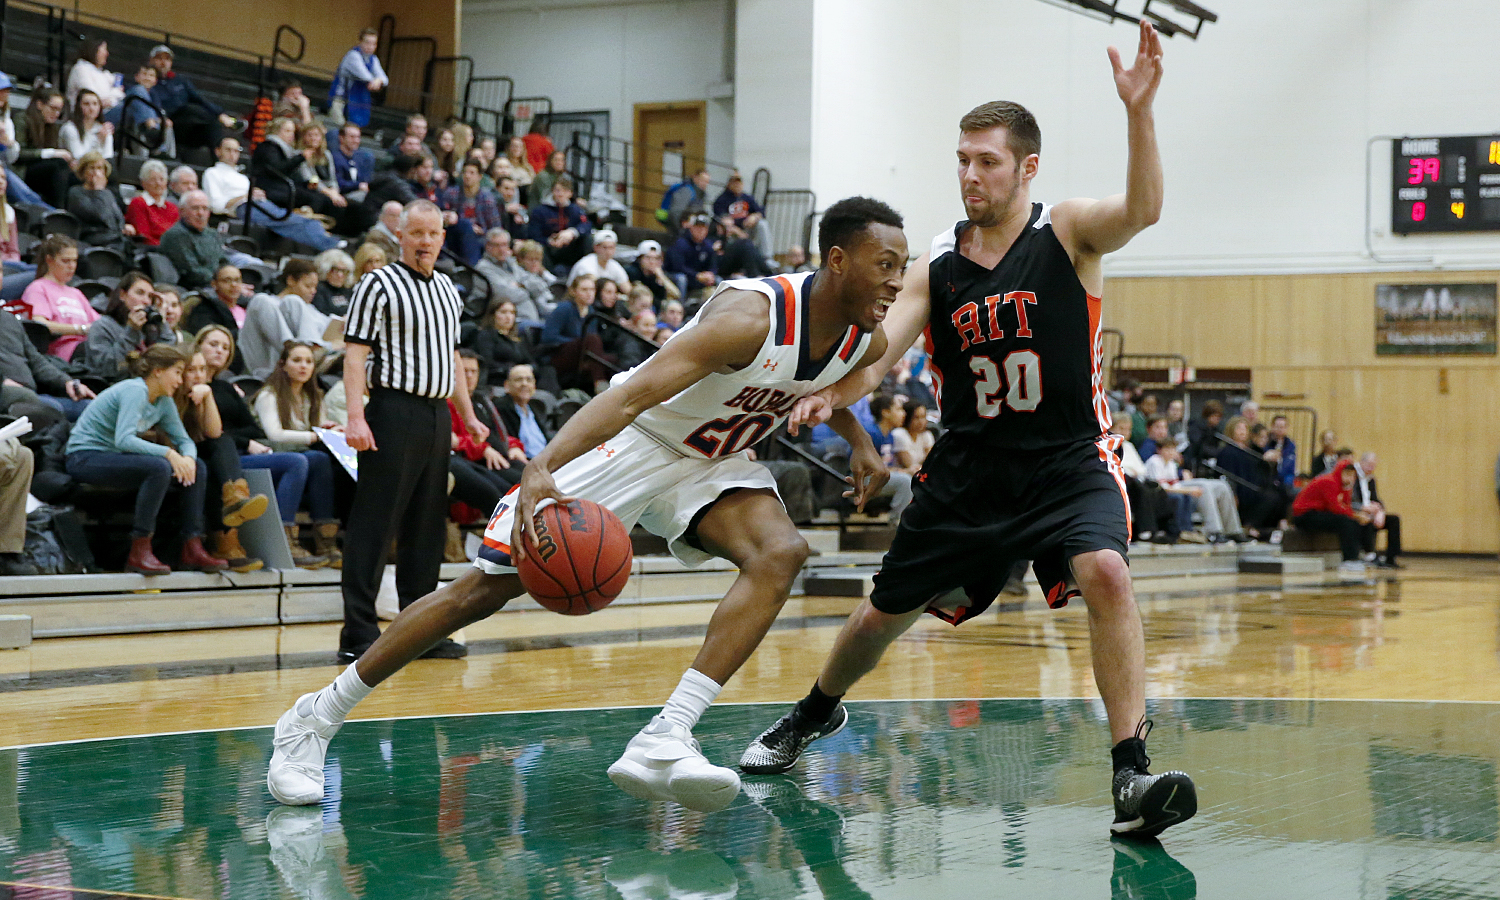 The Hobart College basketball team shot 53 percent from the field, posted a season-high 16 steals, and got a game-high 28 points from sophomore Jamal Lucas in an 88-73 Liberty League win over Rochester Institute of Technology tonight.